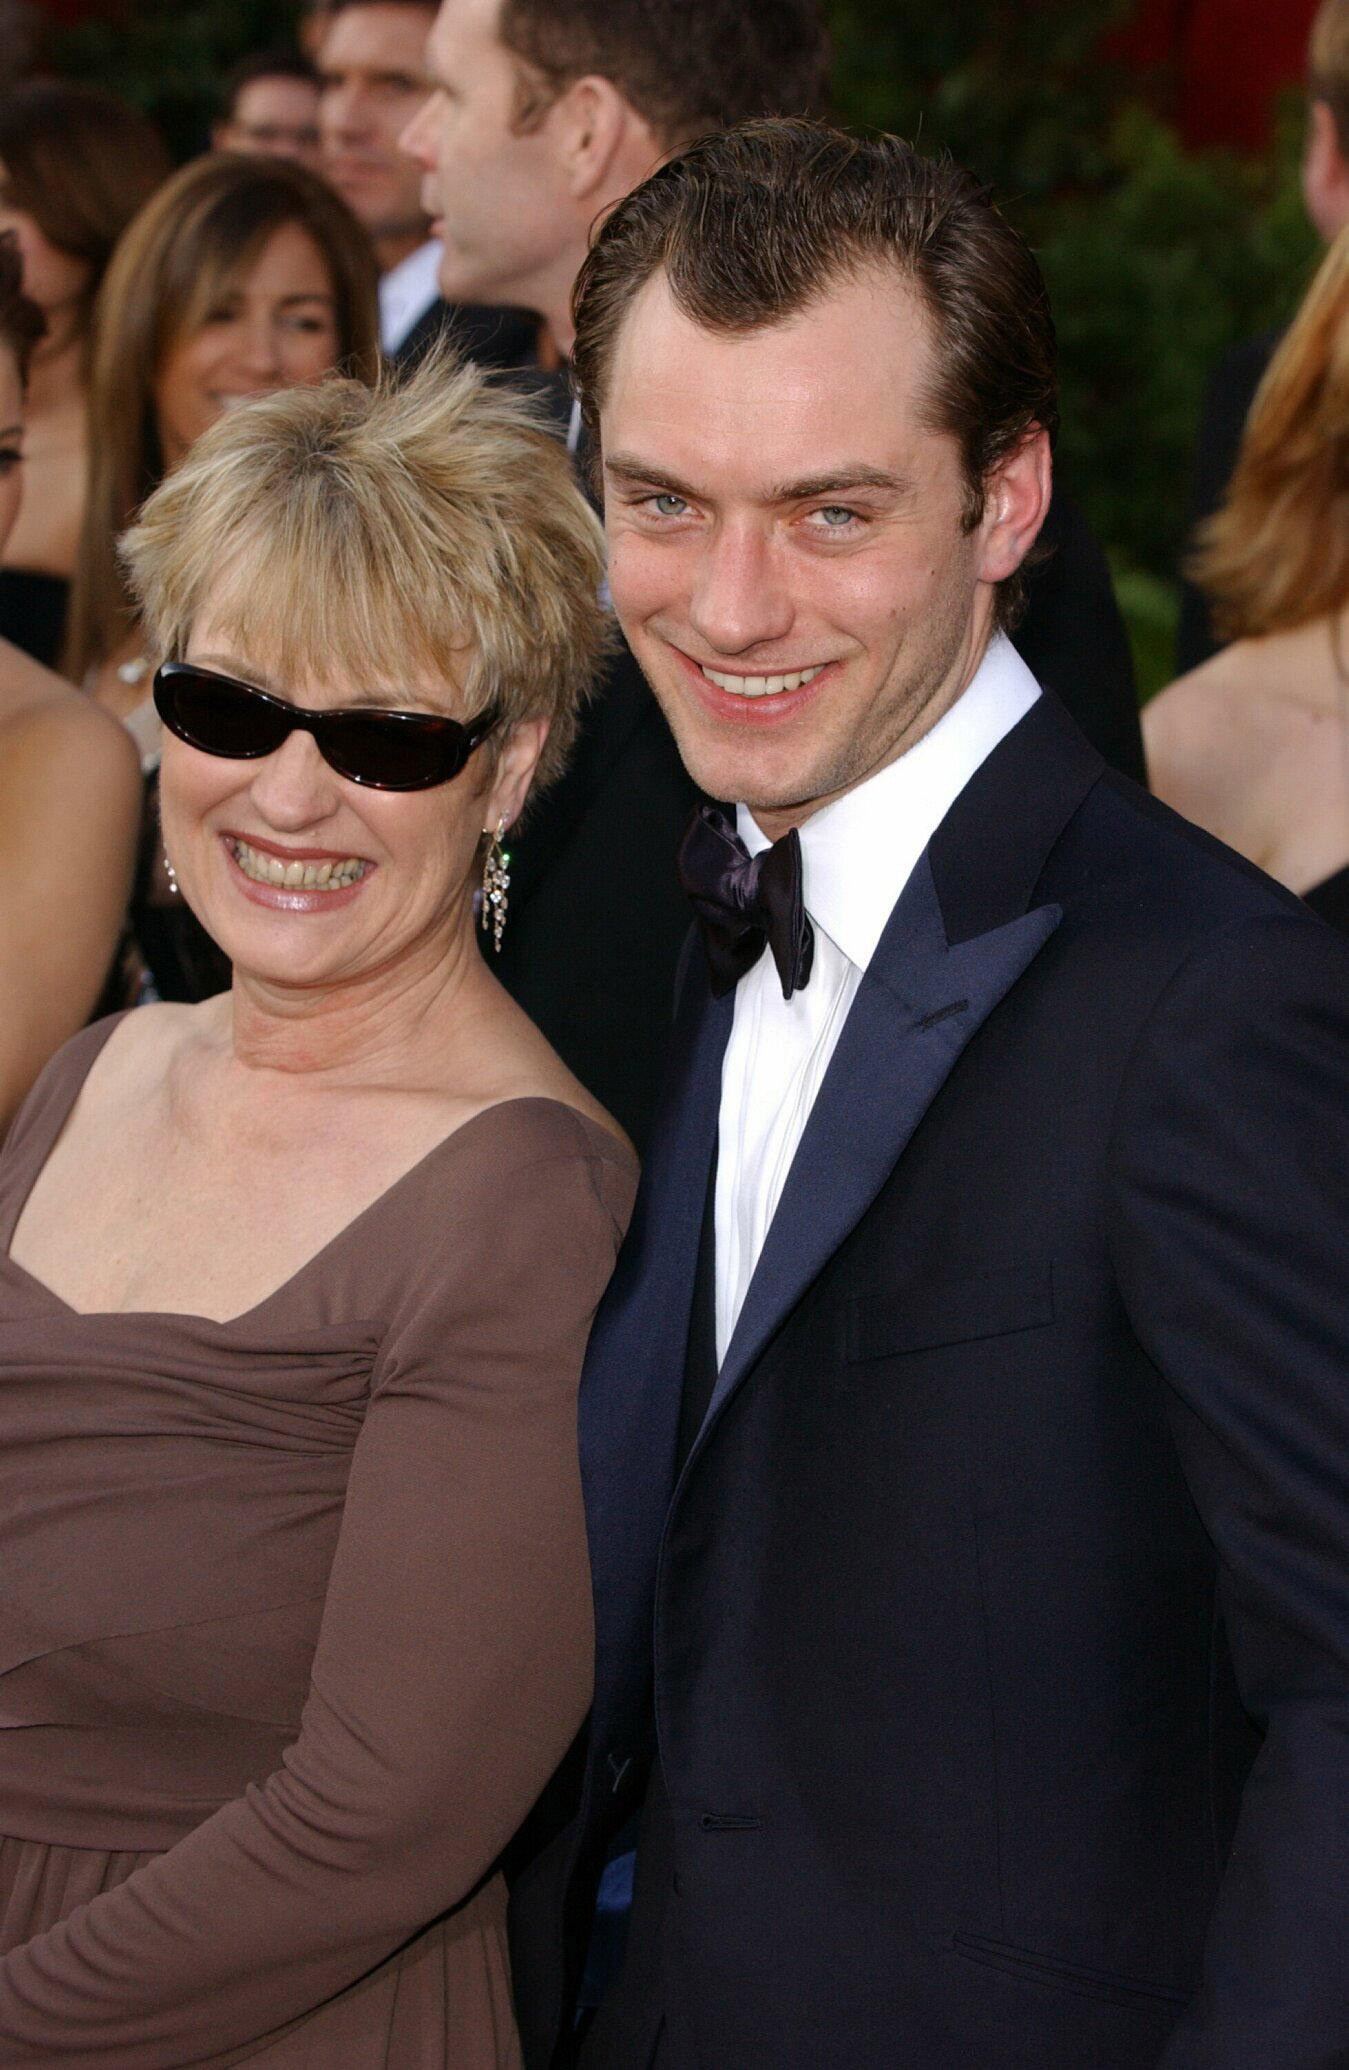 Actor Jude Law and his mother Maggie arrive at the Kodak Theatre in Los Angeles for the 76th Academy Awards on Feb. 29, 2004.